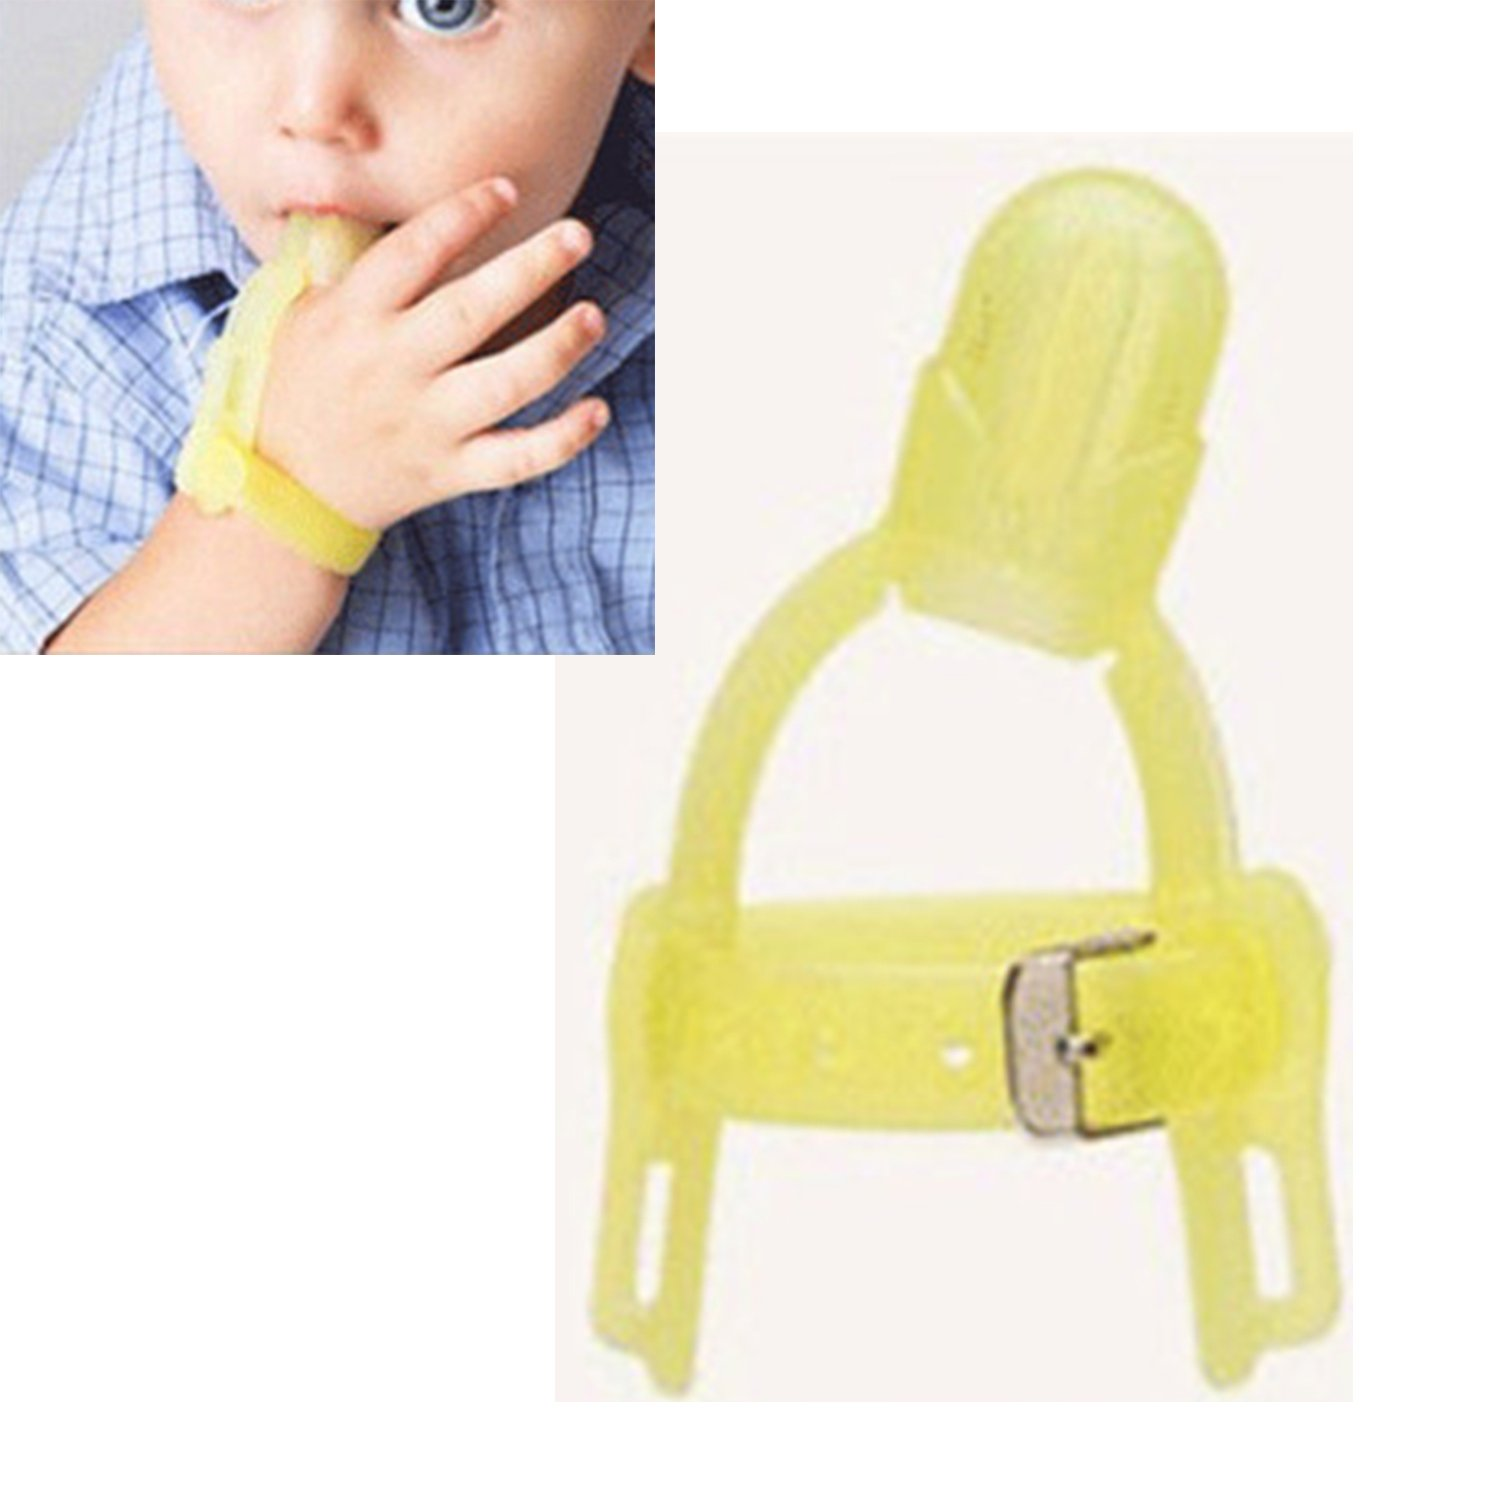 Silicone Stop Thumb Sucking Non-toxic Treatment Kit Stop Finger Sucking for 1-5 years Baby Kids(Color random)